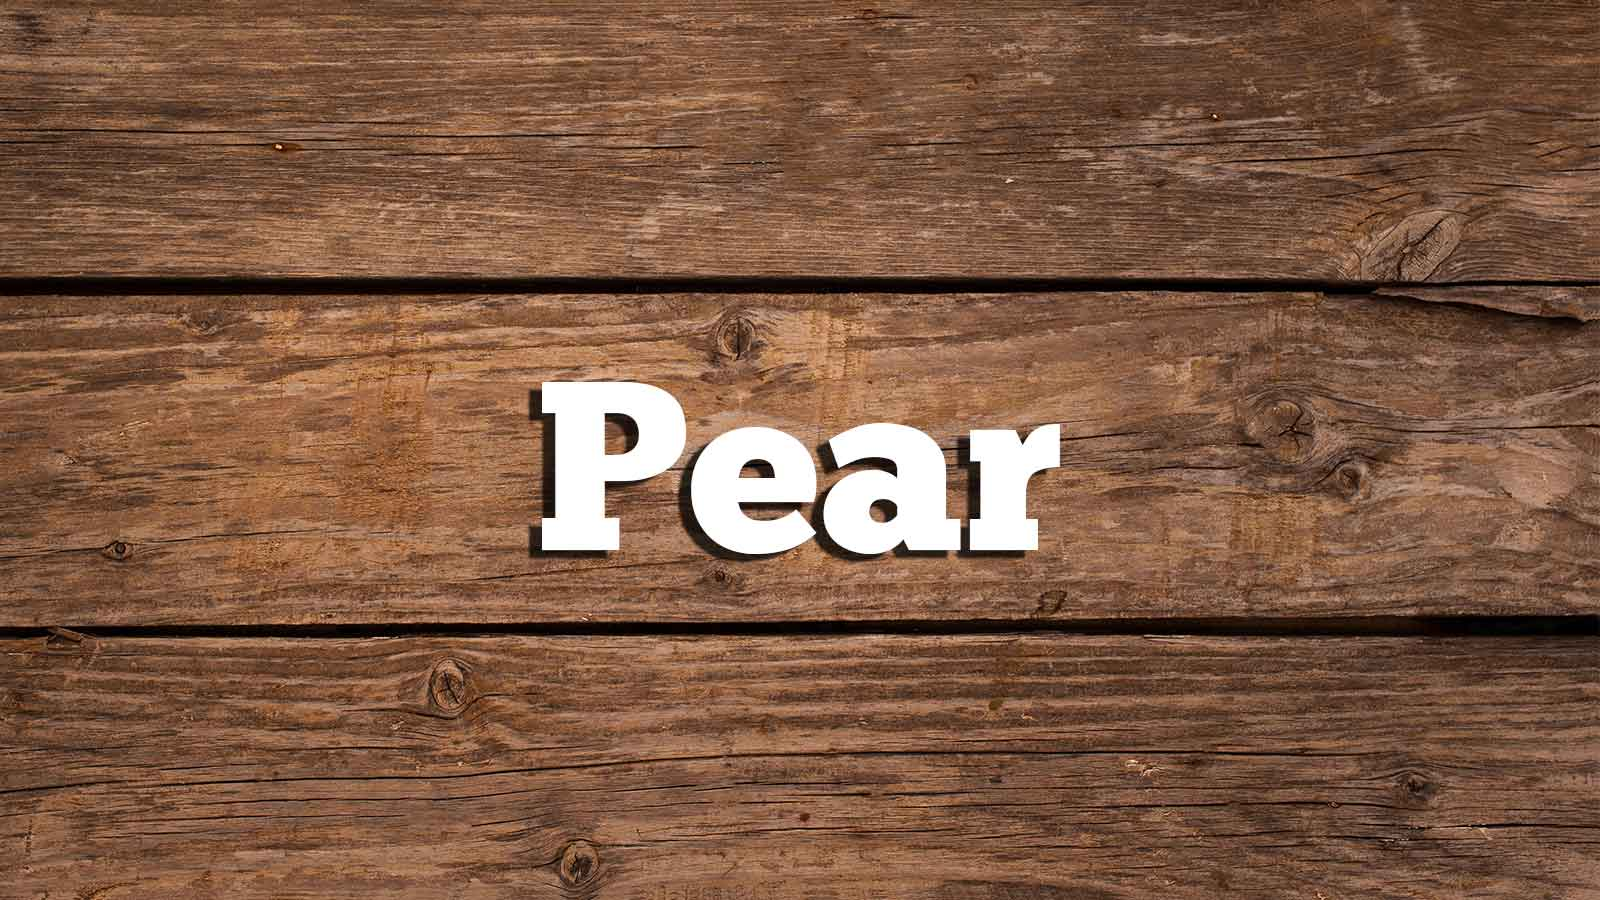 Image for Pear